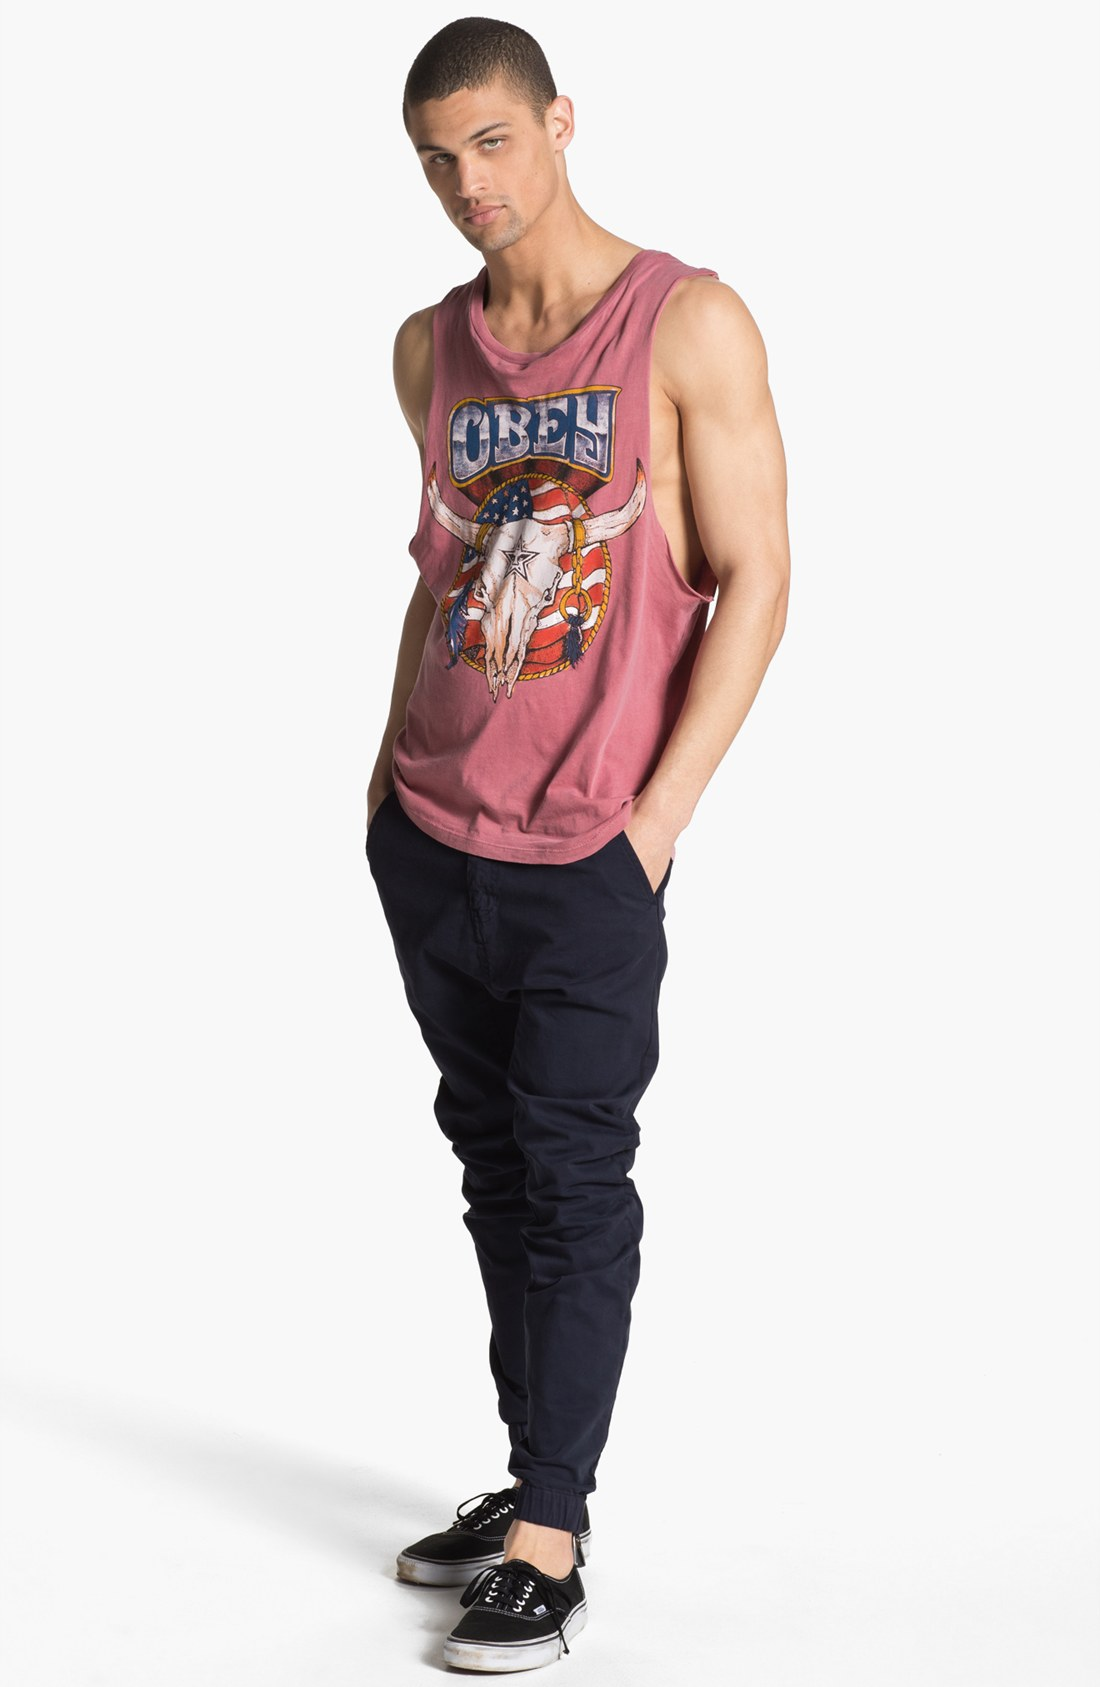 obey freedom skull graphic tank top in red for men lyst. Black Bedroom Furniture Sets. Home Design Ideas